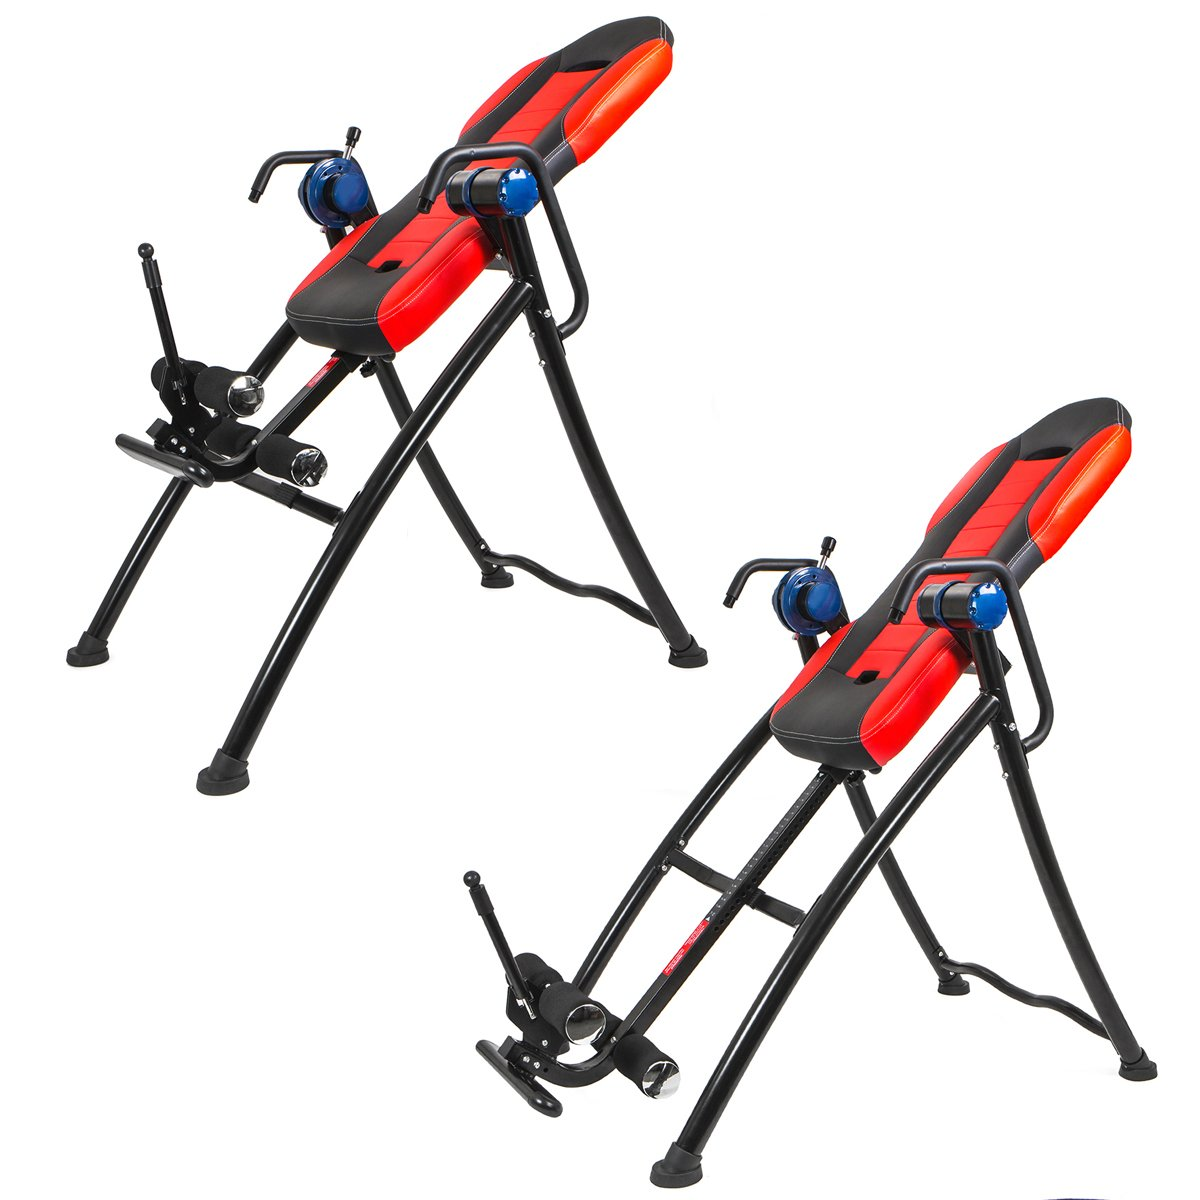 XtremepowerUS Gravity Inversion Therapy Table Fitness Back Pain Relief w/ Padded Backrest by XtremepowerUS (Image #2)